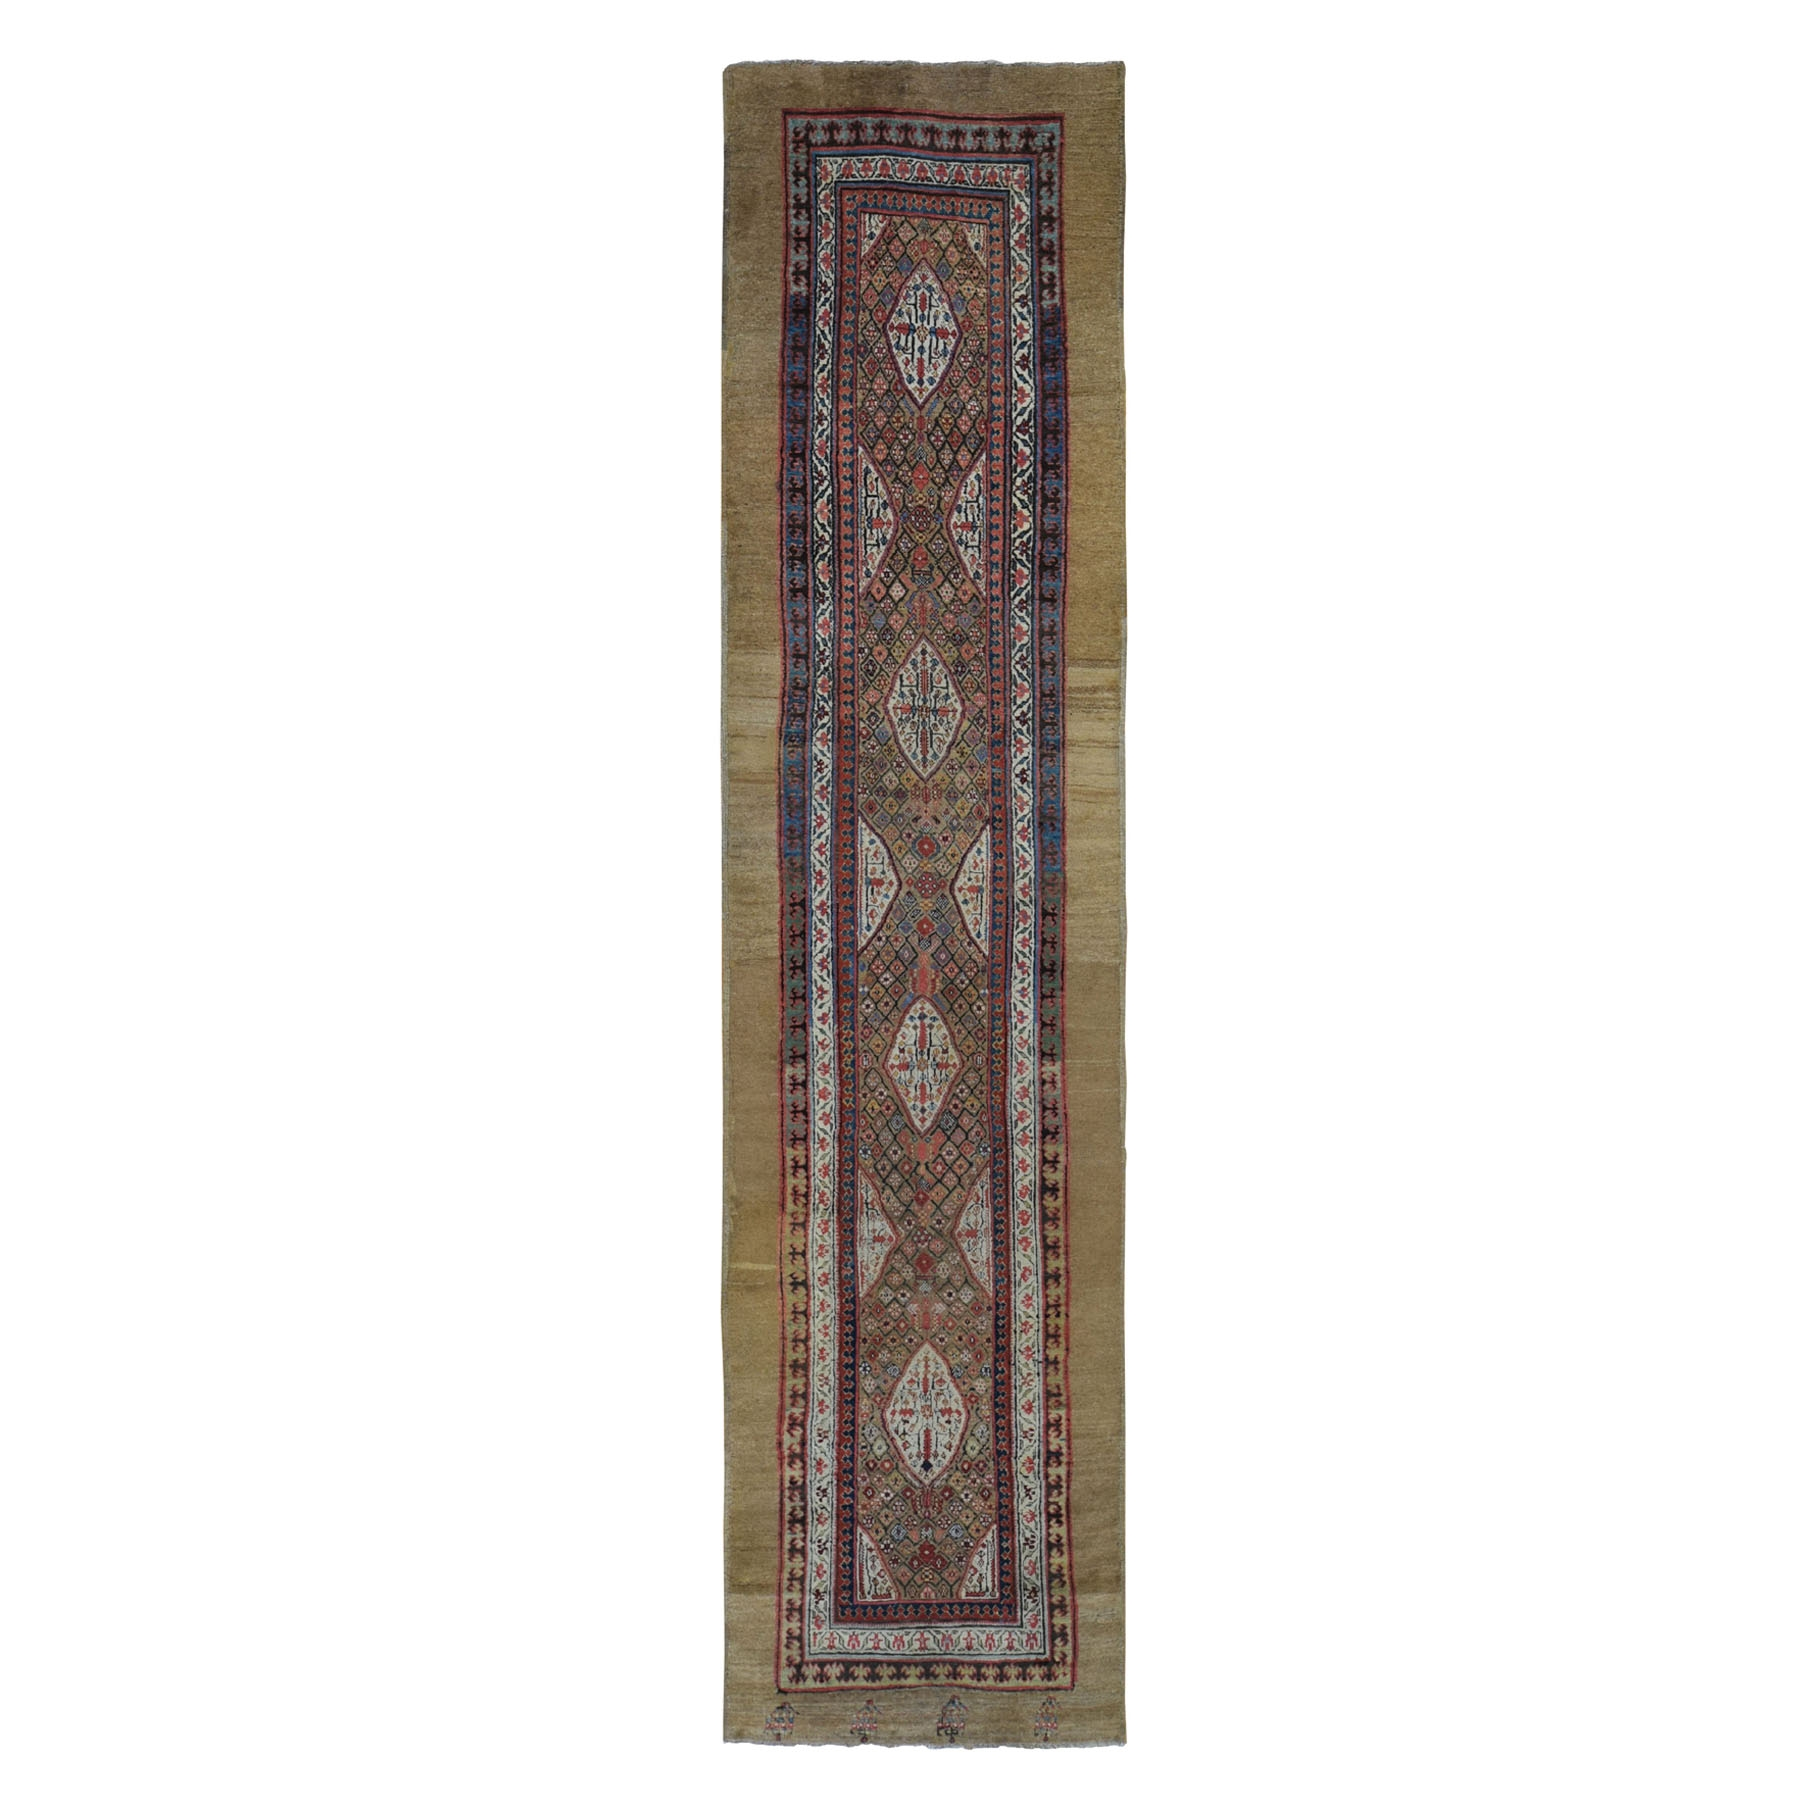 "3'X12'10"" Brown Antique Persian Serab Runner Camel Hair Full Pile Runner Hand Knotted Oriental Rugg moad90e0"